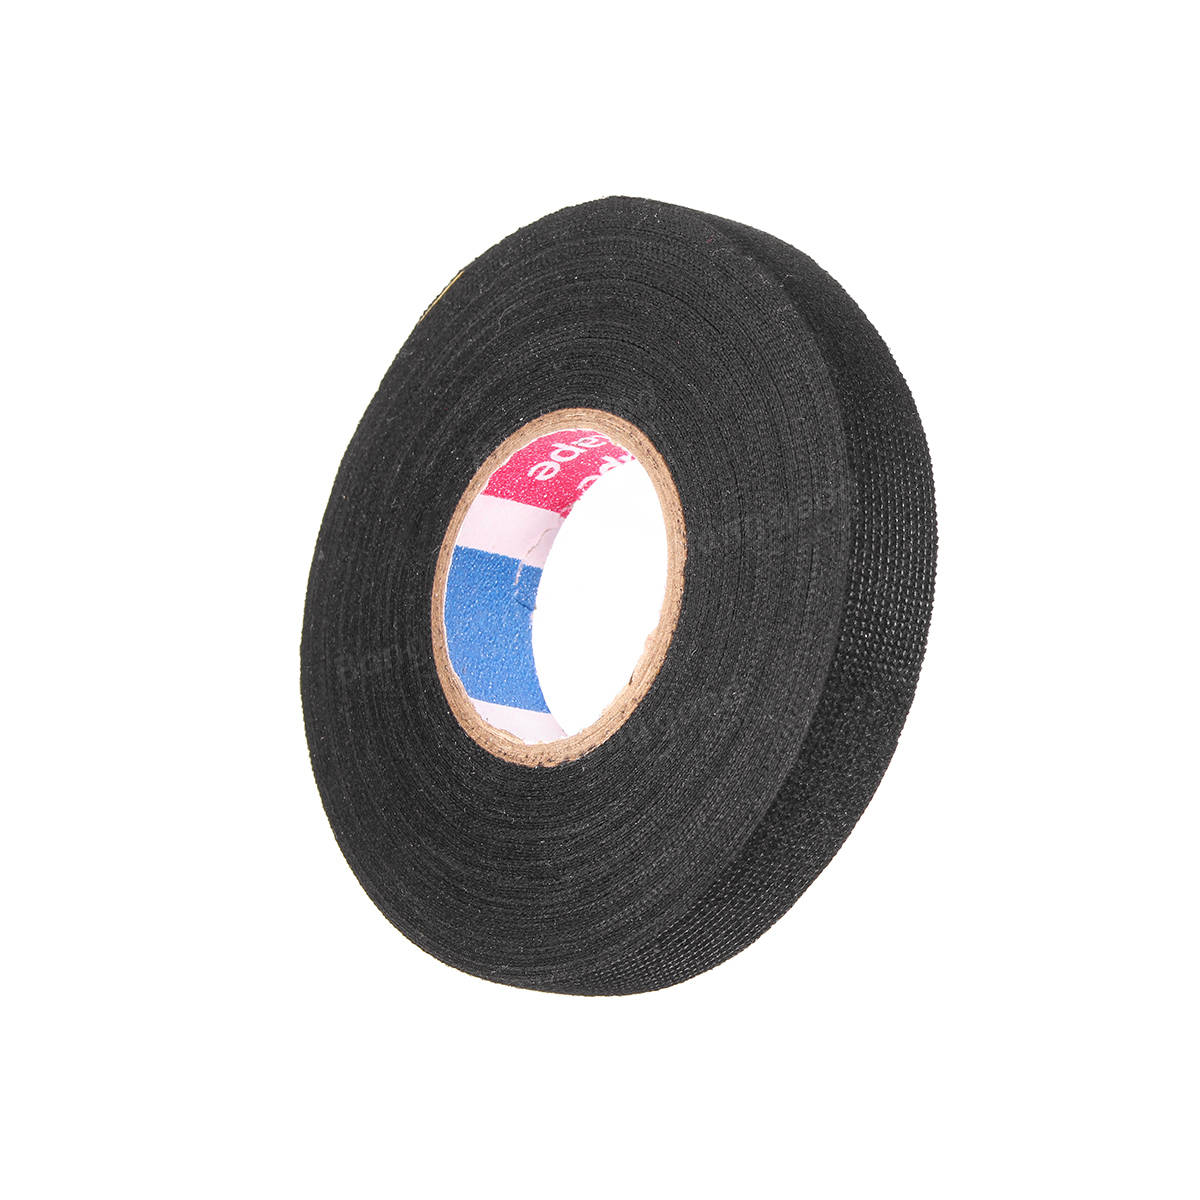 New 15mm X 15m Adhesive Cloth Fabric Tape Wool Roll Black Wiring Harness Electric Cable Wire